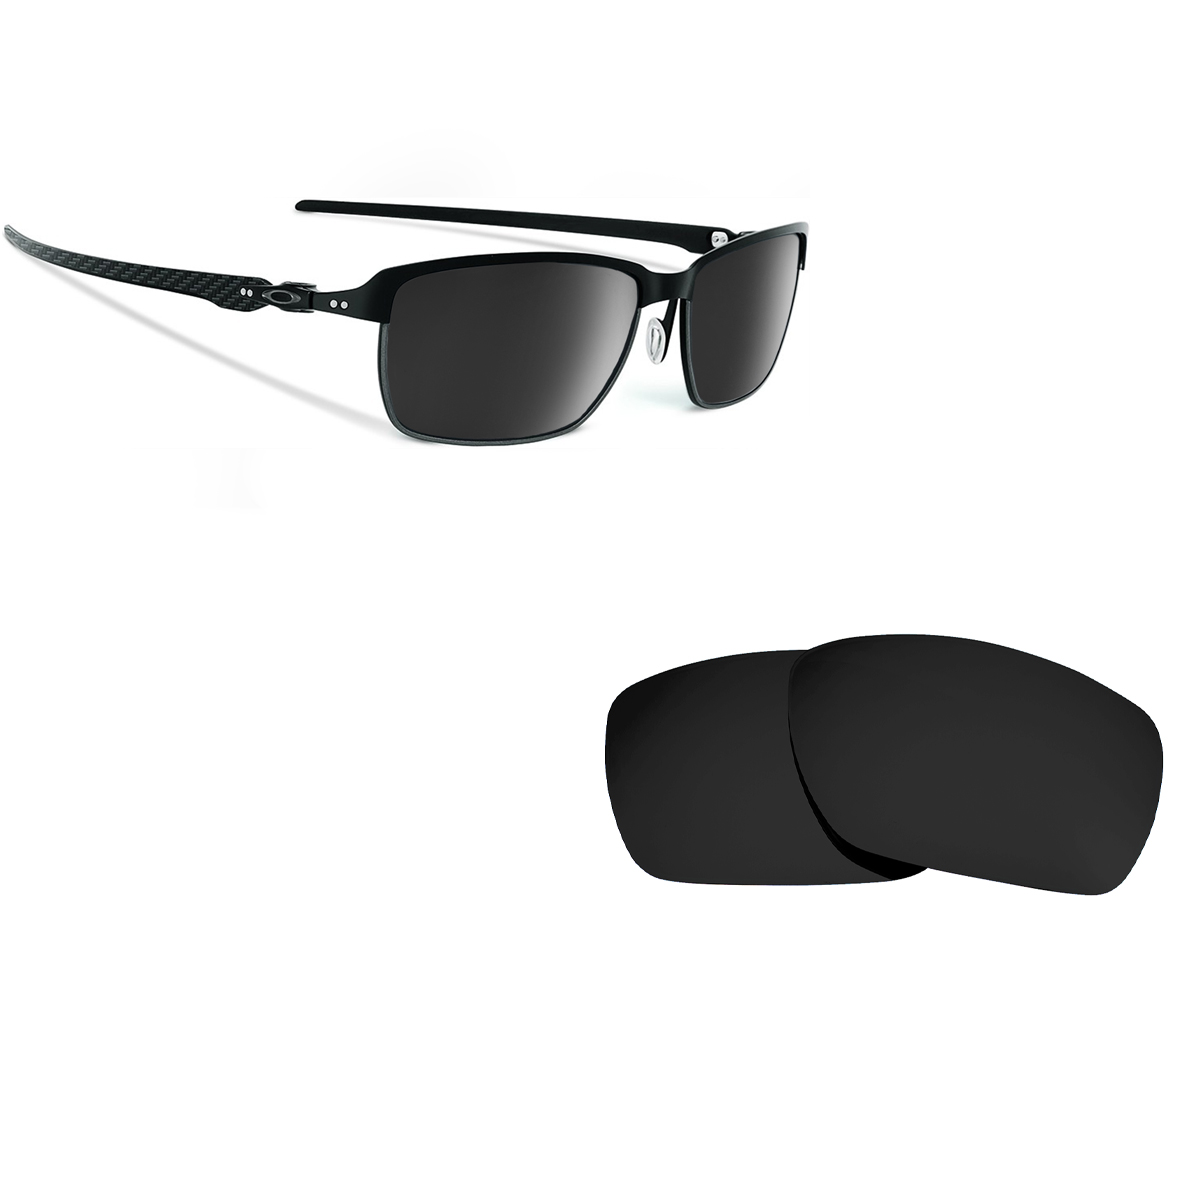 2bc7e8c501 Tinfoil Carbon Replacement Lenses by SEEK OPTICS to fit OAKLEY ...